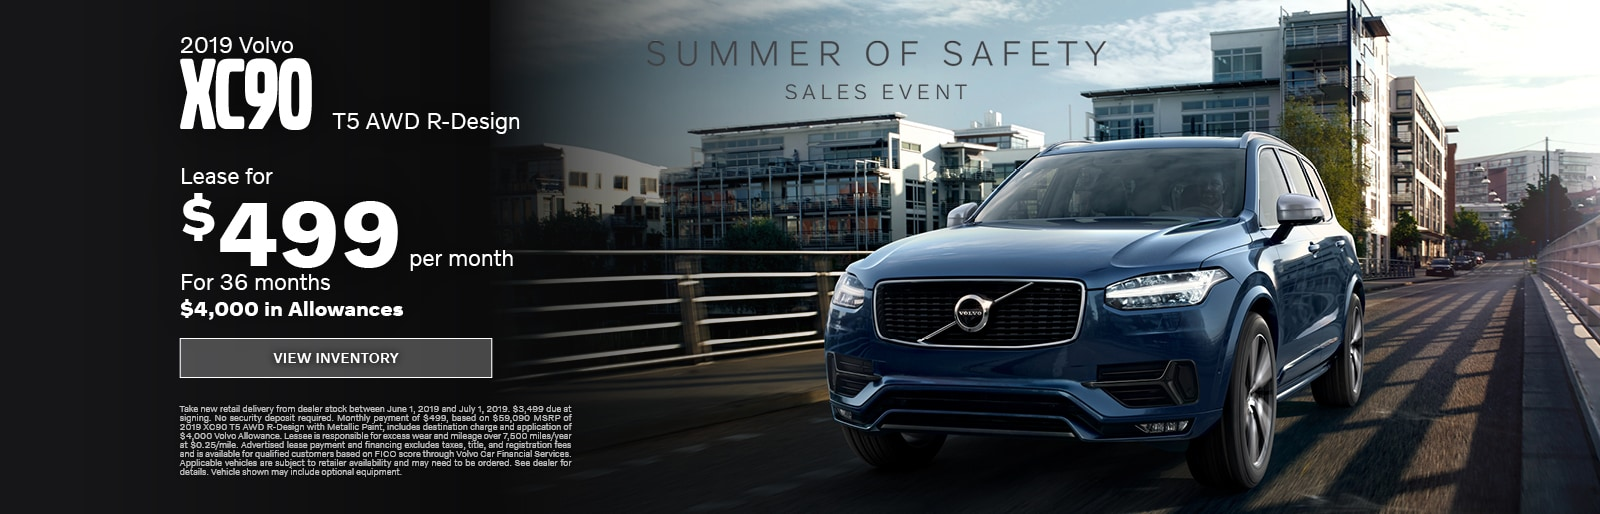 Volvo Dealers Nh >> New 2018 2019 Volvo Used Car Dealer In Scarborough Me Portland